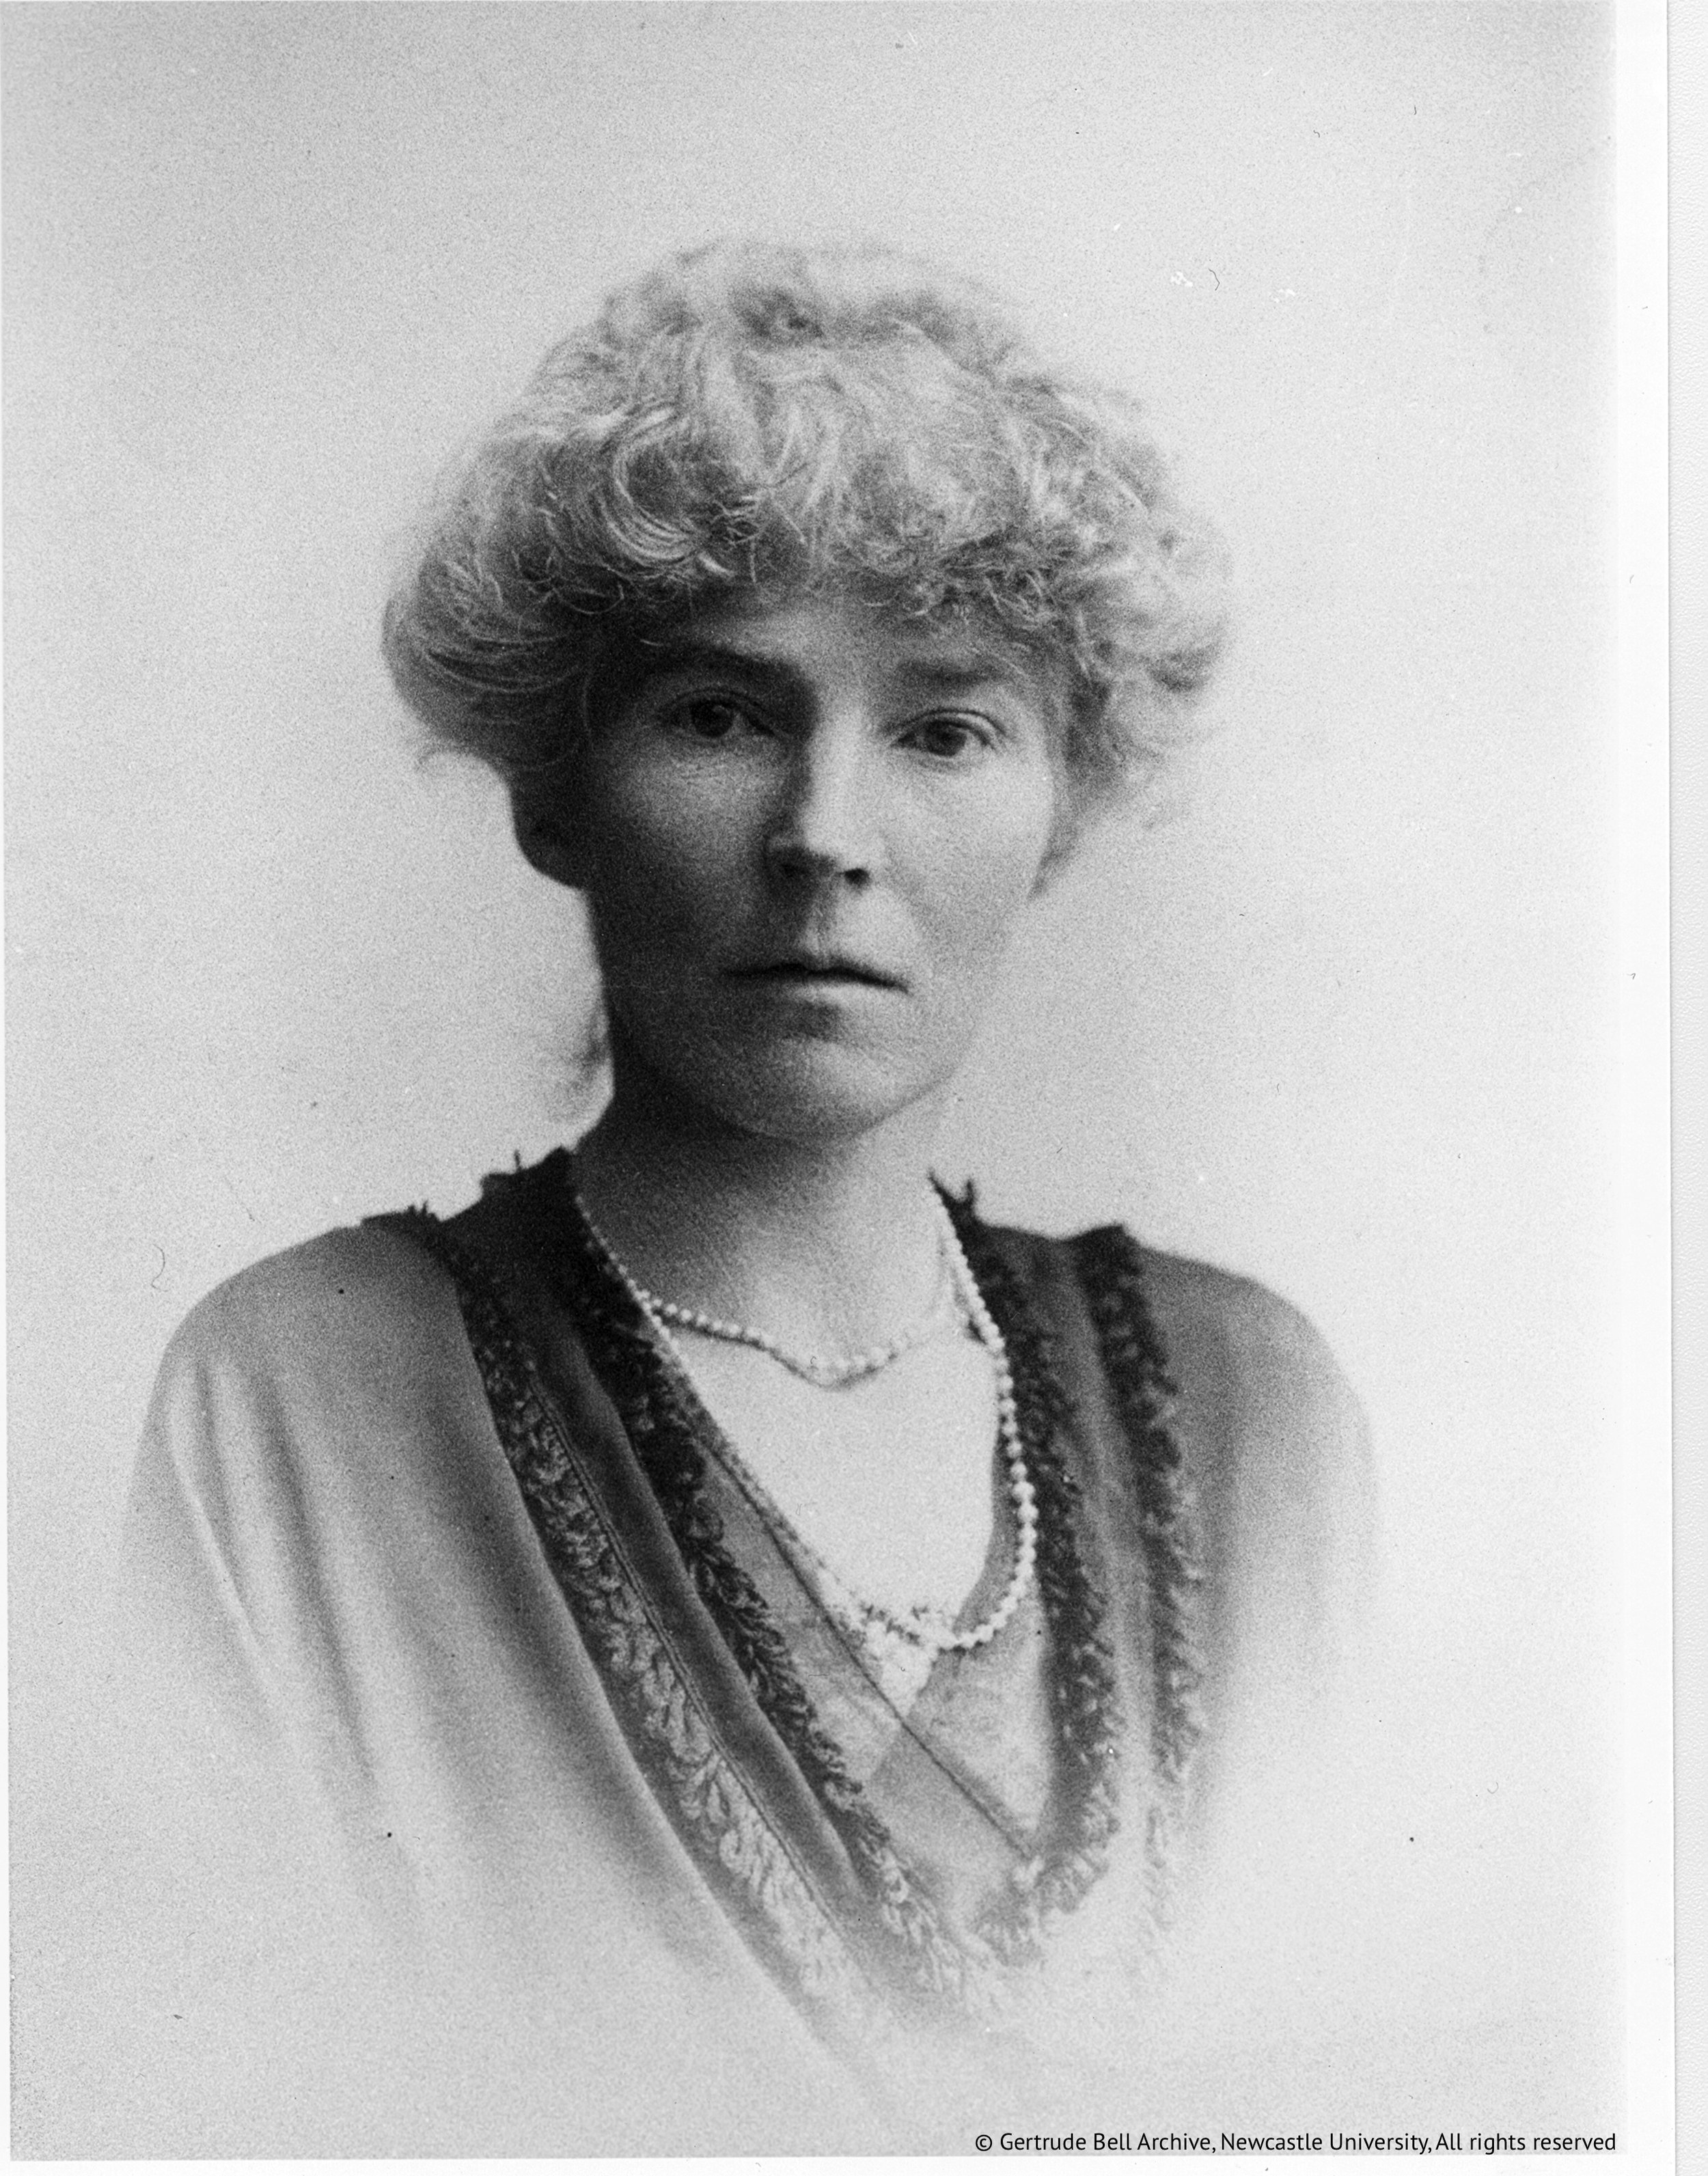 Letters from Baghdad/Gertrude Bell Archive